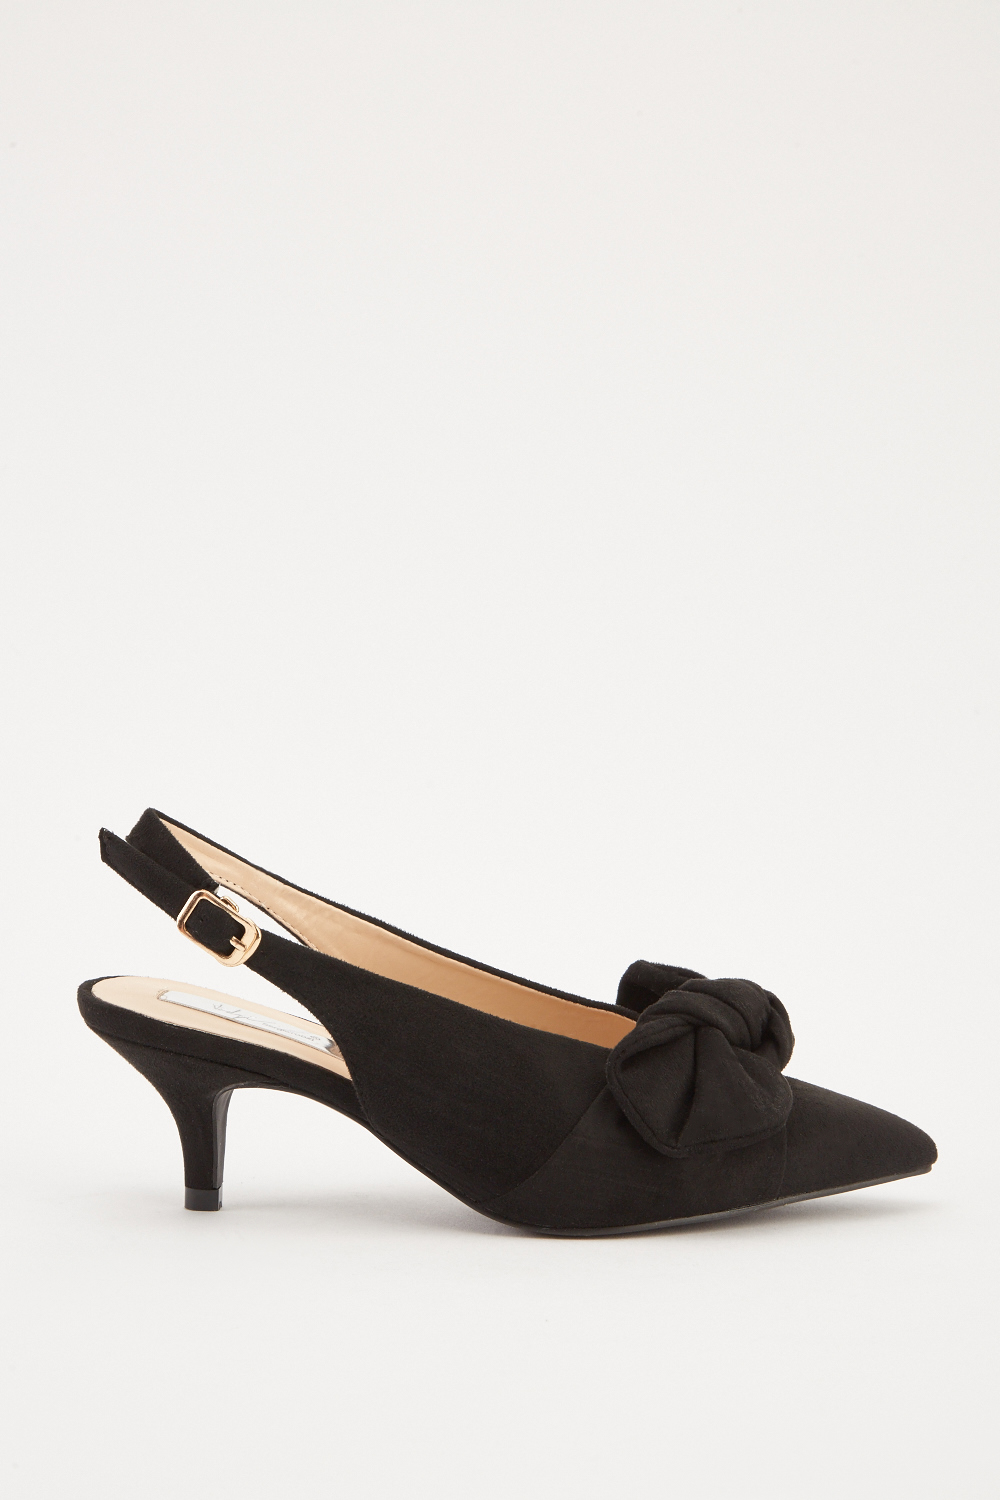 e840cc1064 Slingback Kitten Heel Courts - Black or Khaki - Just £5